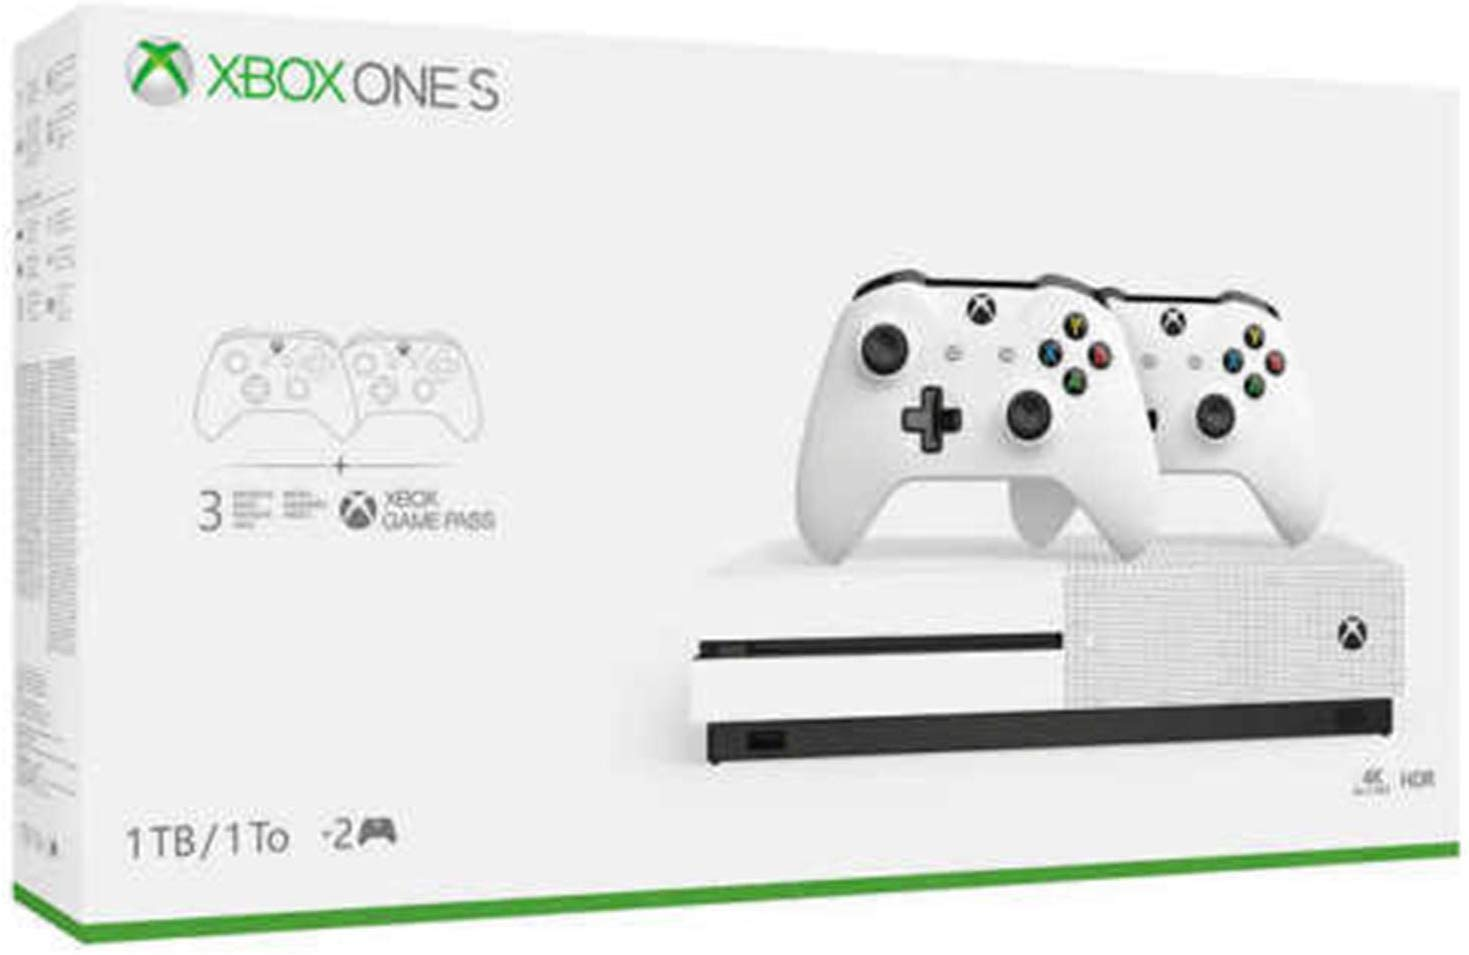 Newest Flagship Microsoft Xbox One S 1TB HDD Bundle with Two (2X) Wireless Controllers, 1-Month Game Pass Trial, 14-Day Xbox Live Gold Trial - White